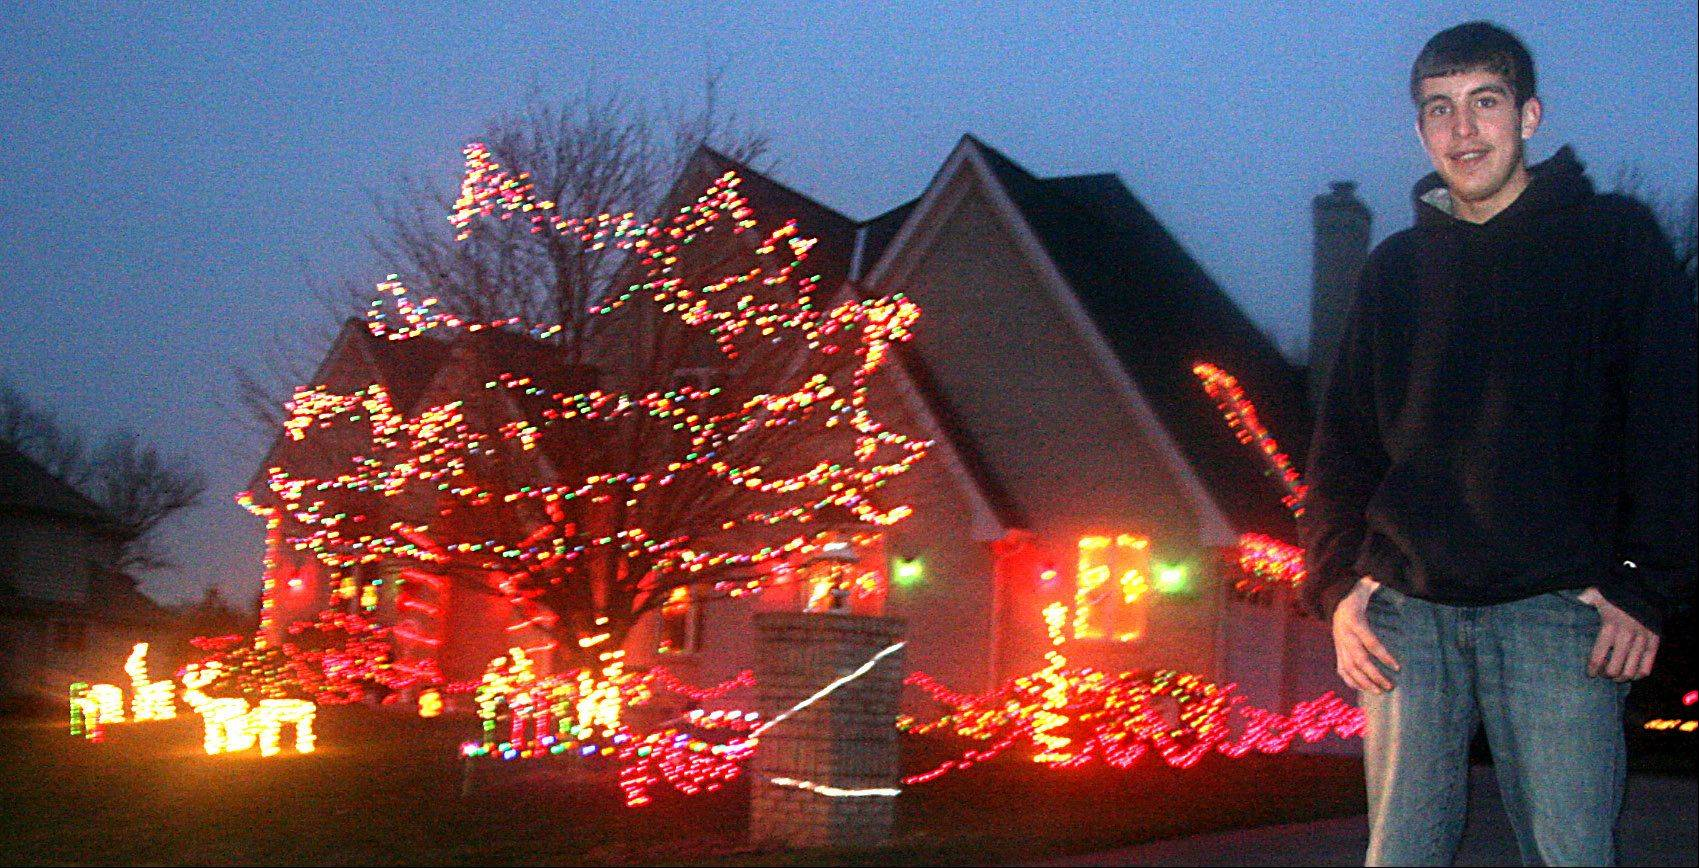 Jeffery Lawnicki, 19, did such a fine job decorating the family home in Hampshire that he won the Daily Herald's Holiday Lights Contest. See dailyherald.com to see a video of Jeffery talking about his decorations.